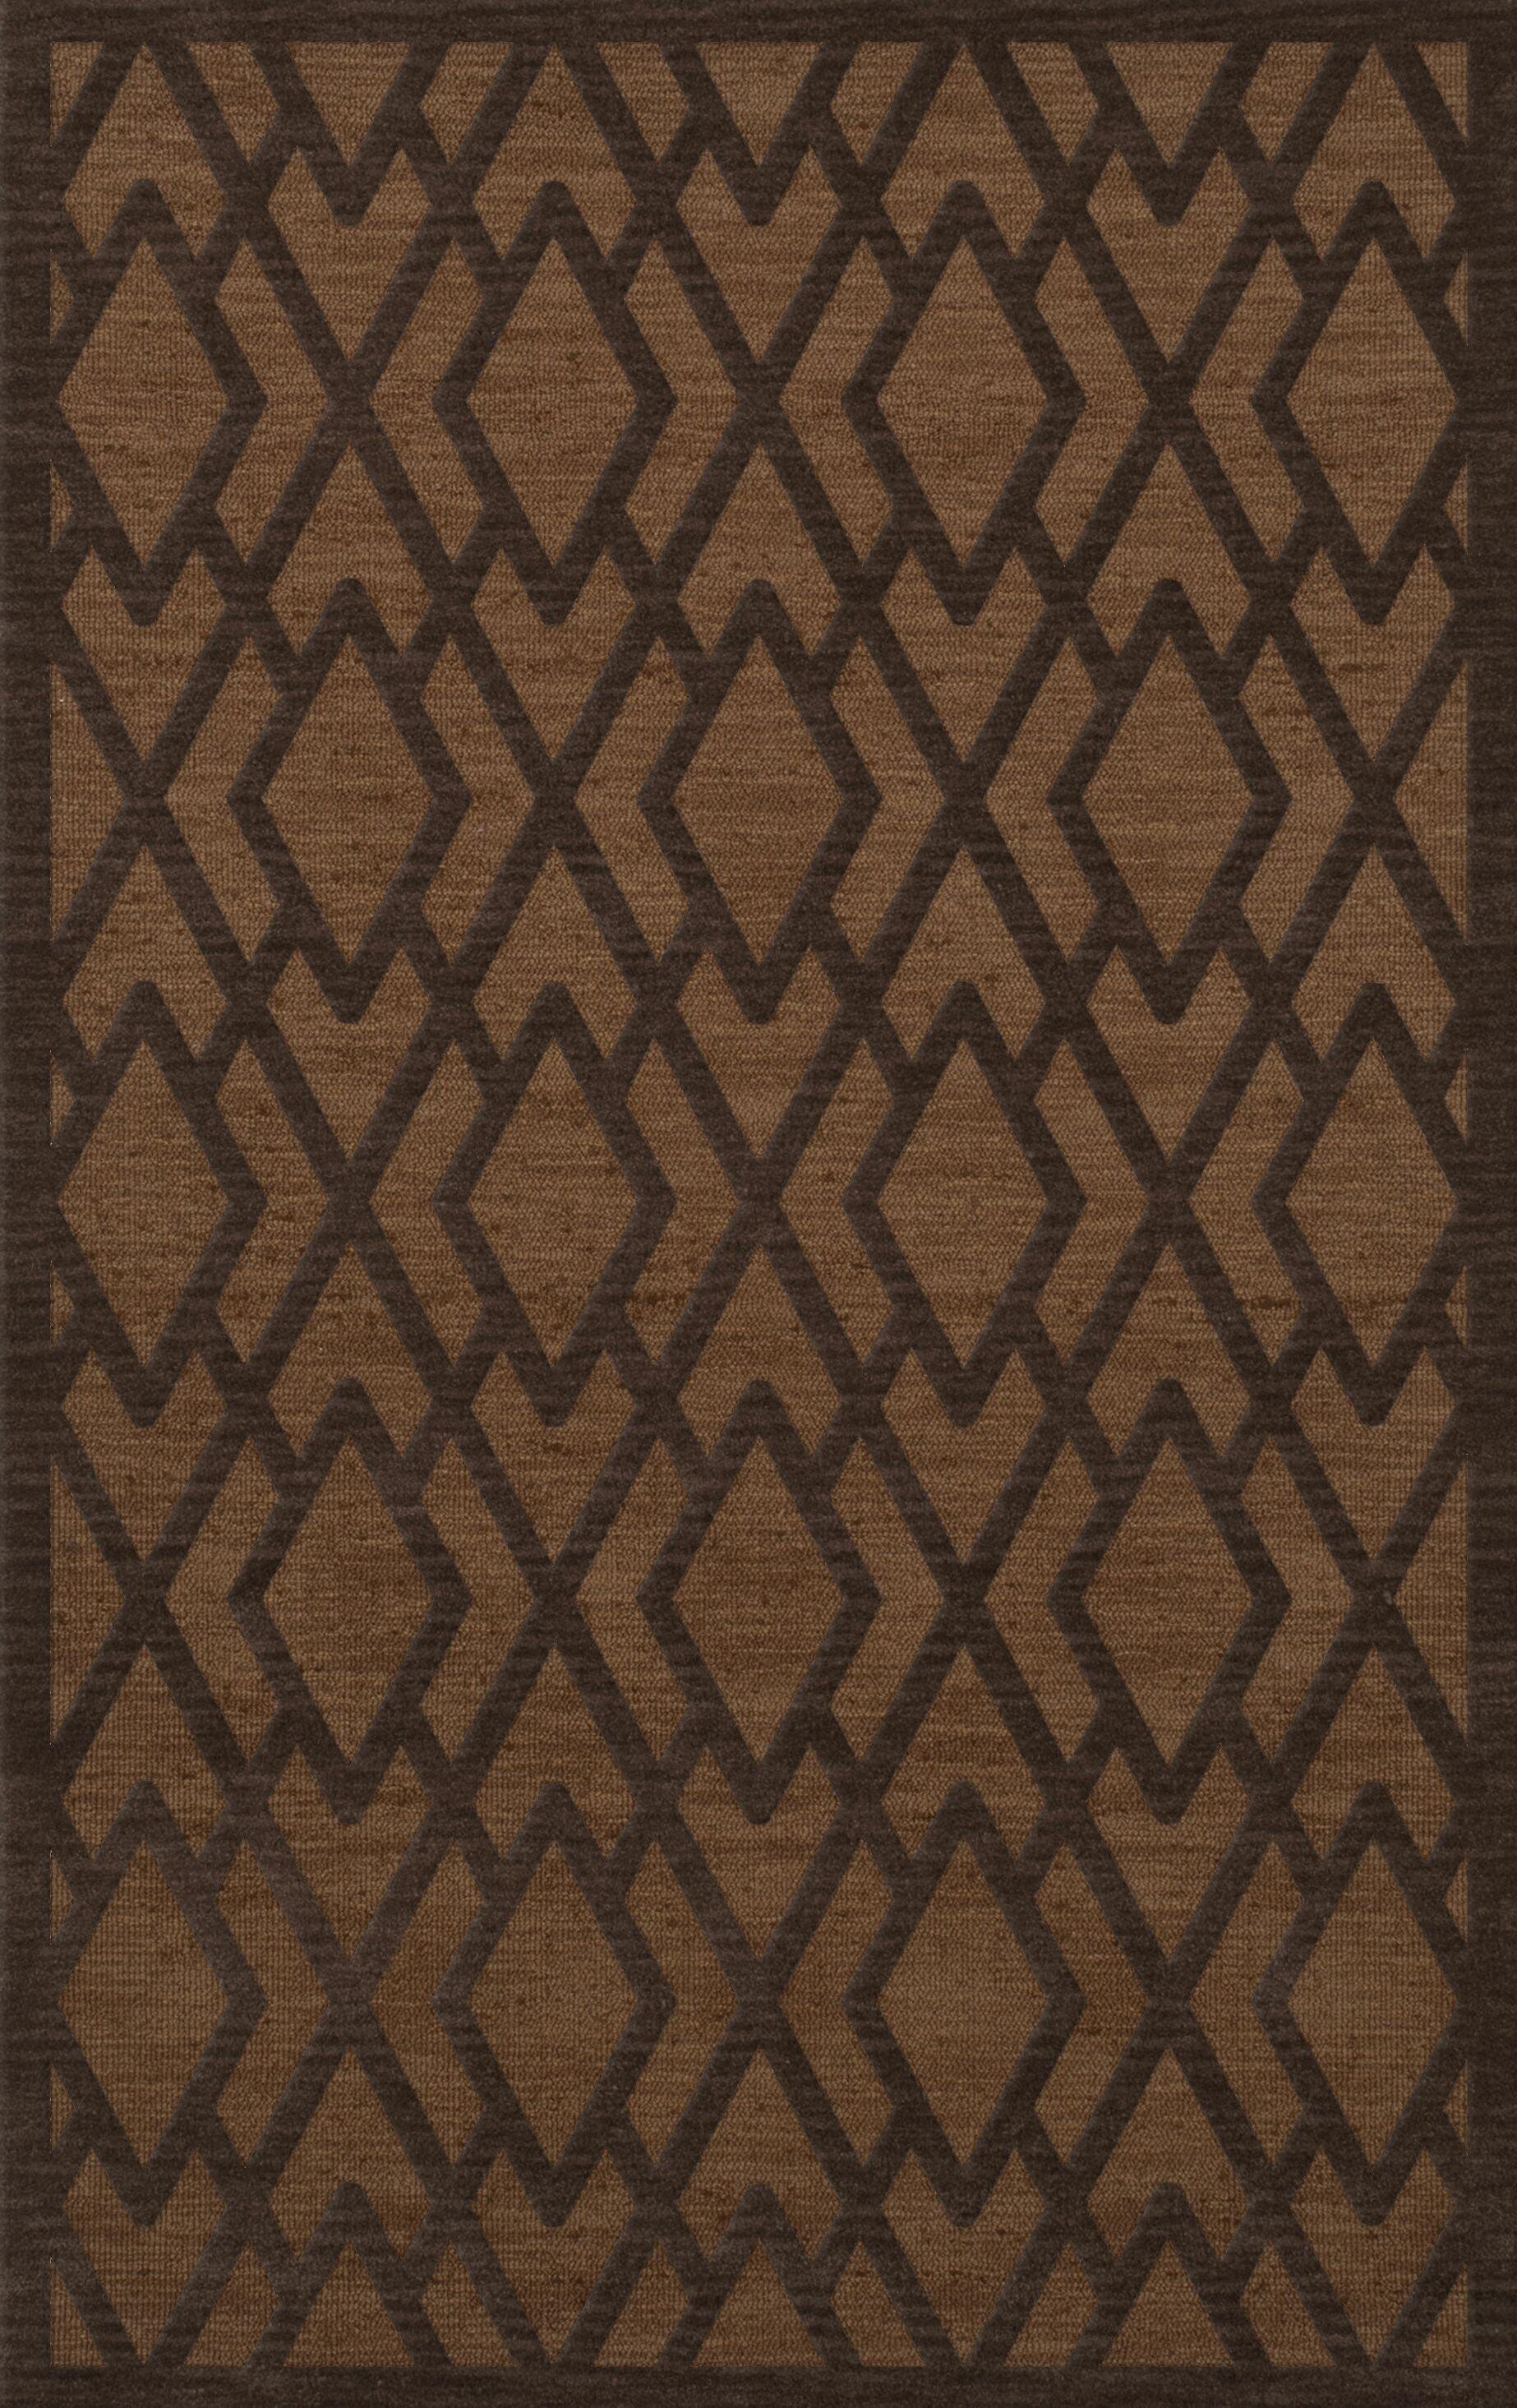 Dover Tufted Wool Caramel Area Rug Rug Size: Rectangle 8' x 10'